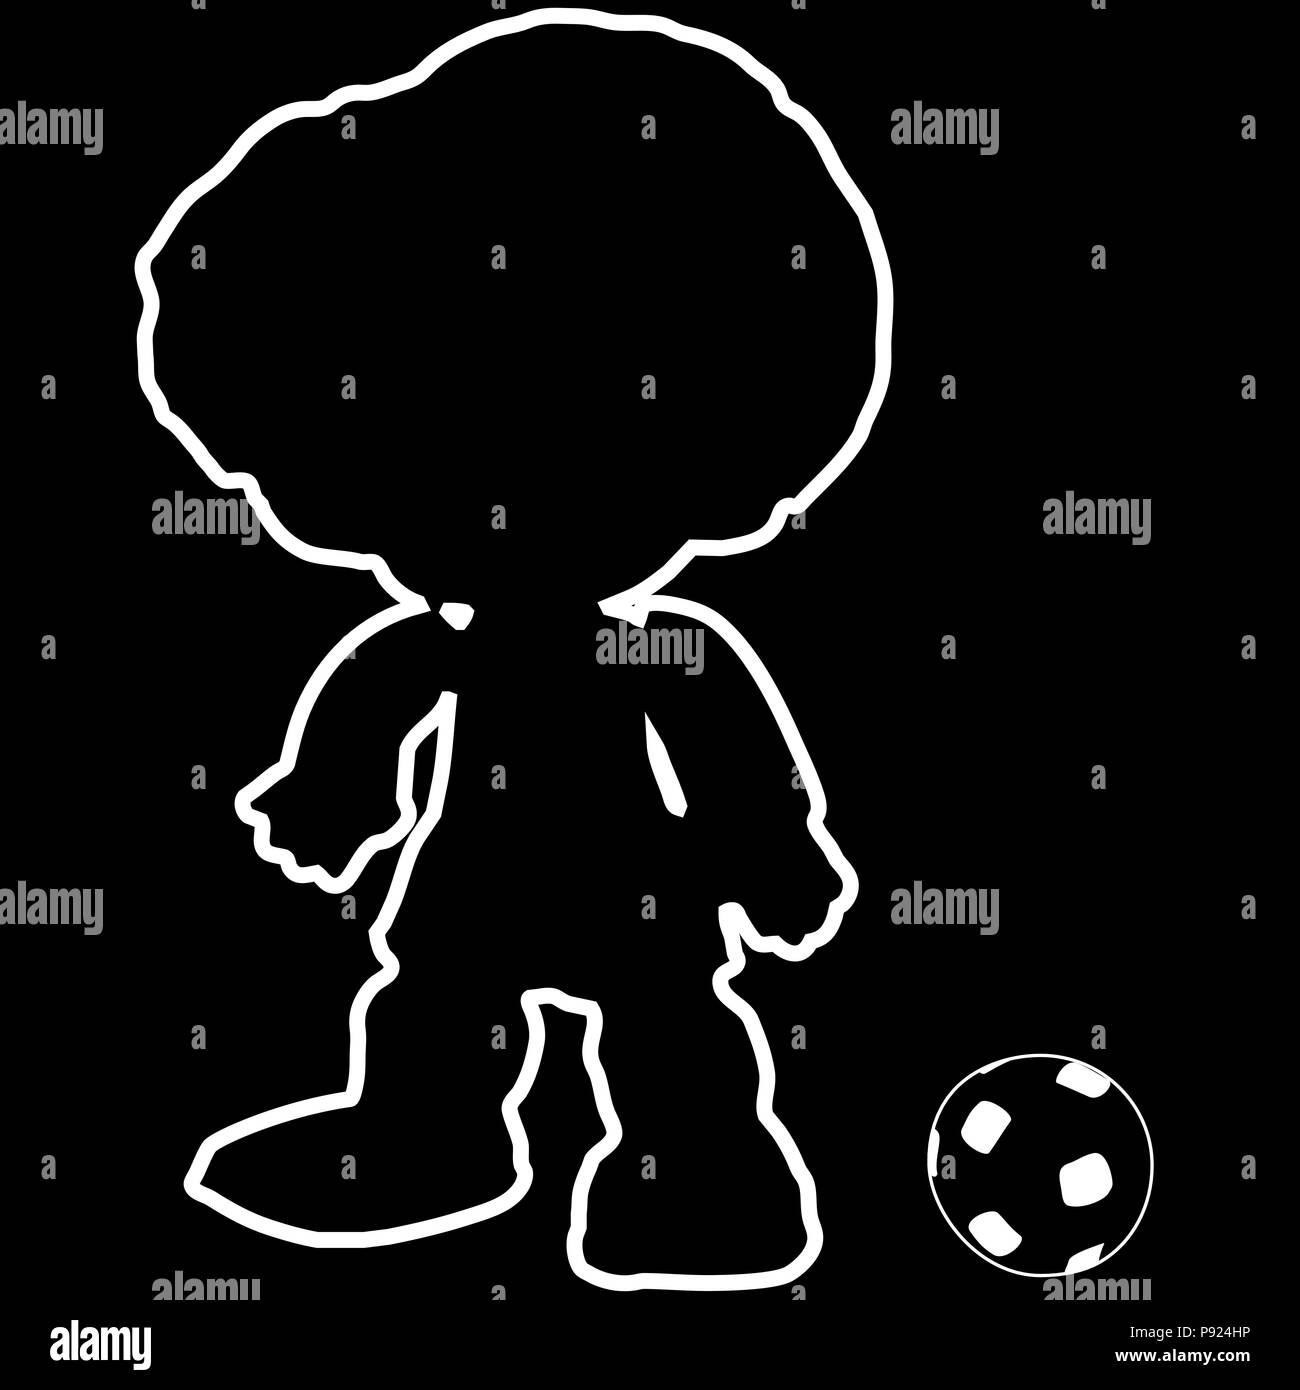 outline football player, silhouette with classic soccer ball - Stock Vector